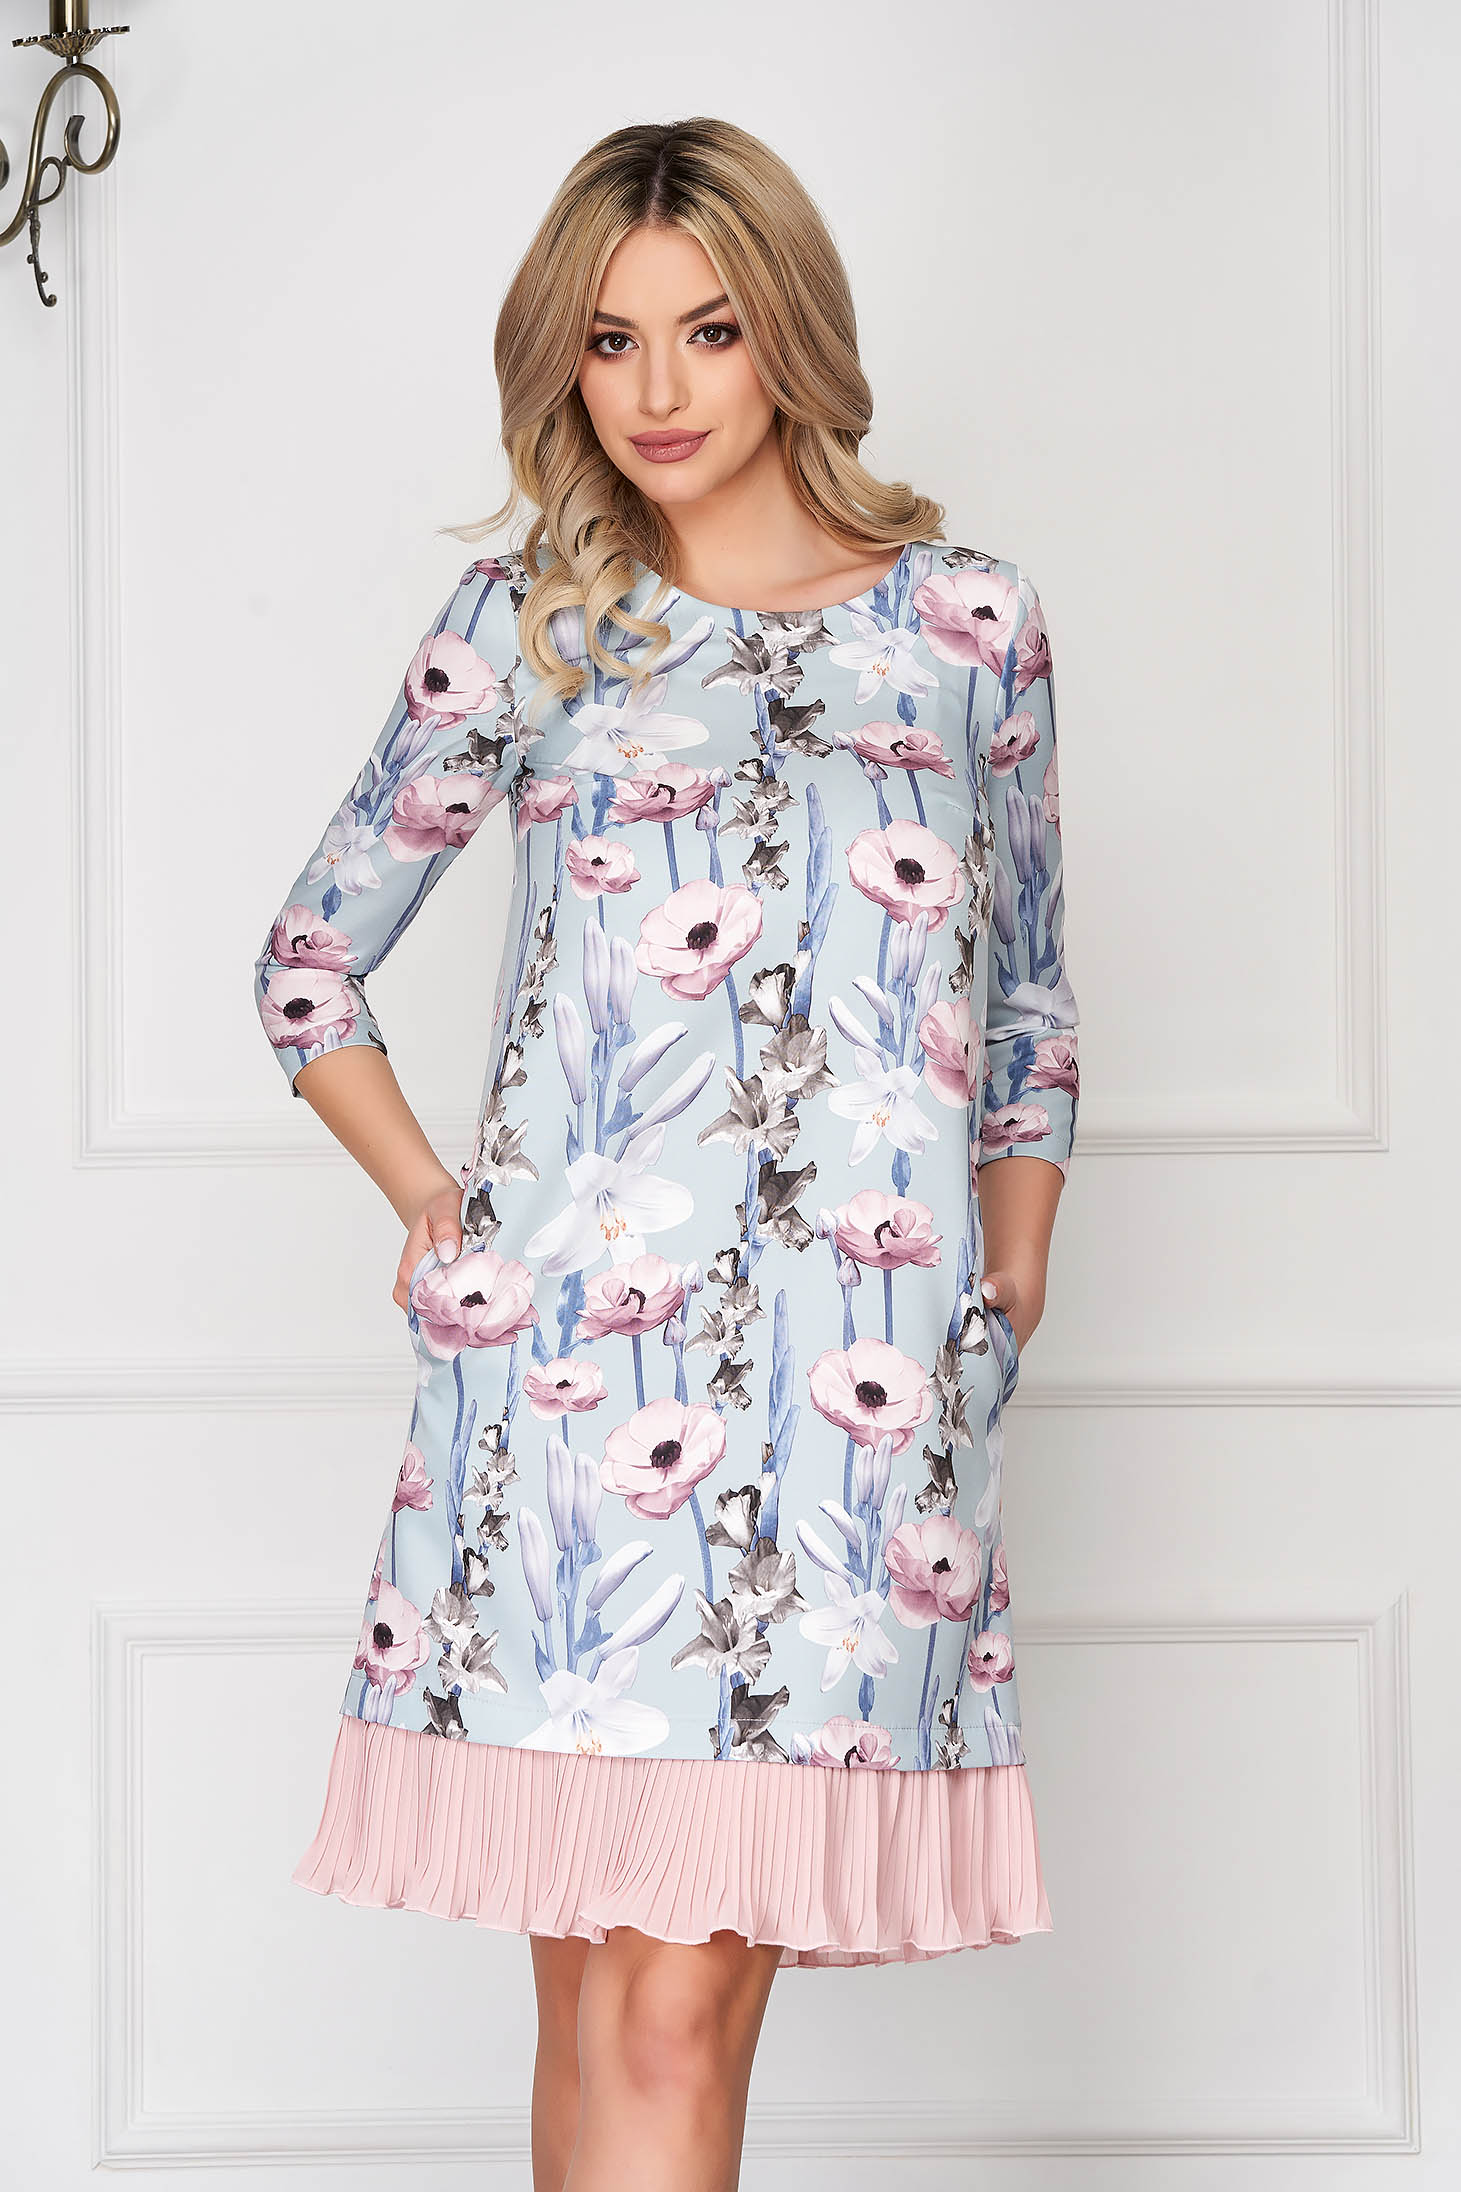 Dress StarShinerS lightblue short cut daily a-line with pockets with ruffles at the buttom of the dress